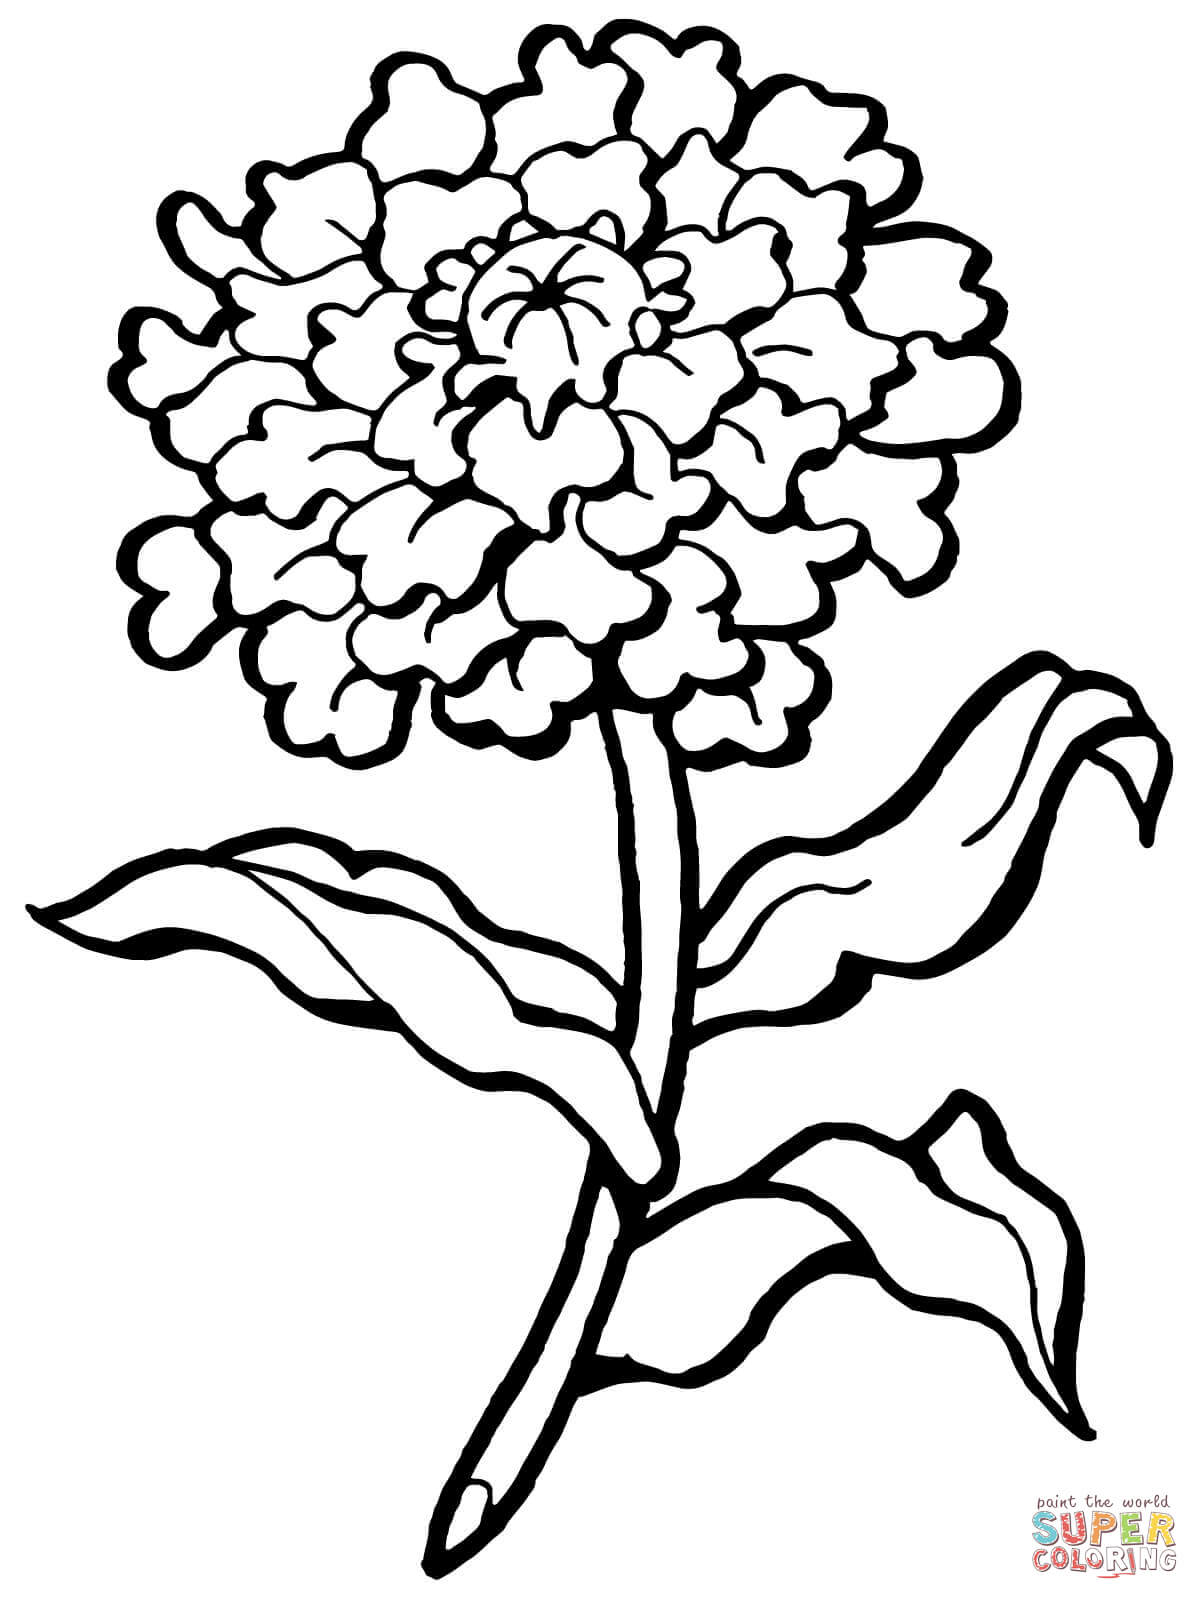 Carnation clipart black and white Pages Pages Carnation Carnation Coloring